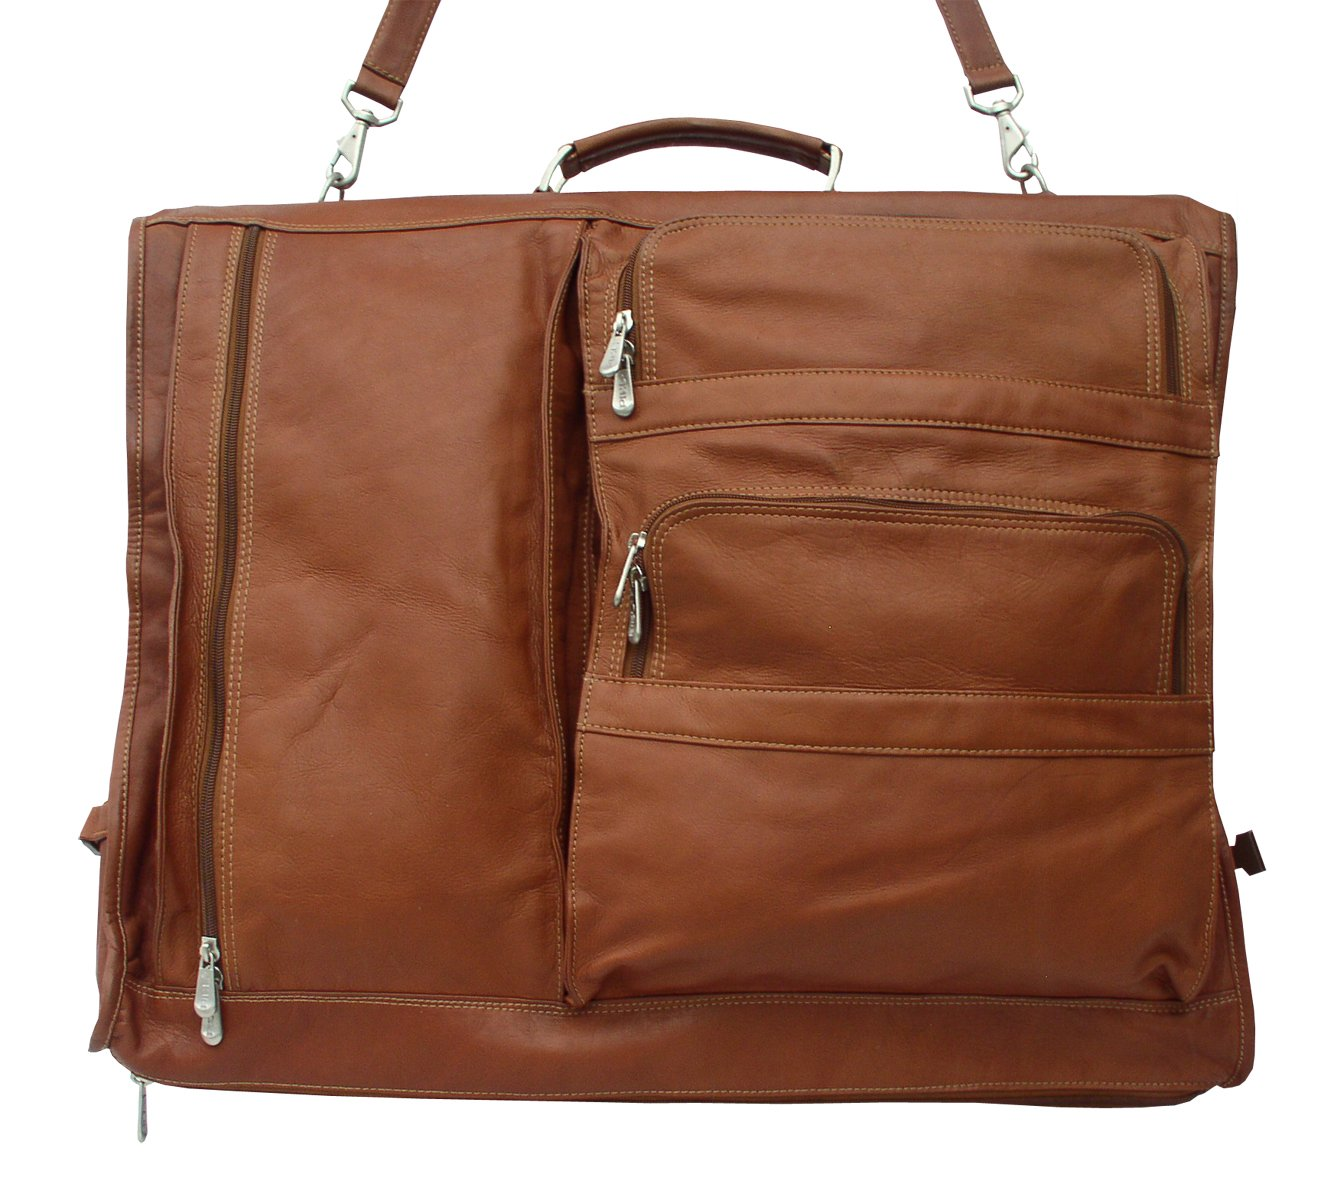 Piel Leather Traveler Executive Expandable Garment Bag in Saddle by Piel Leather